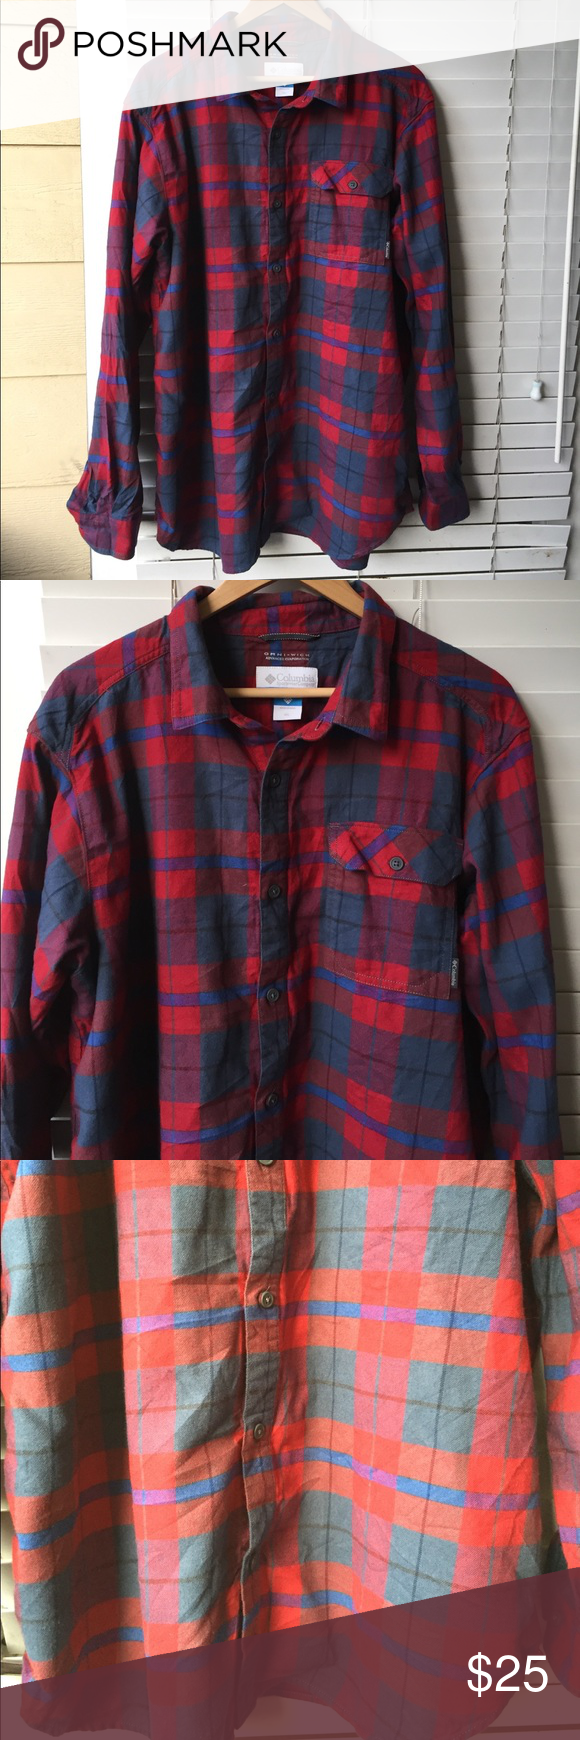 Columbia flannel jacket  Columbia Plaid Flannel Long Sleeve Button Shirt  Plaid flannel